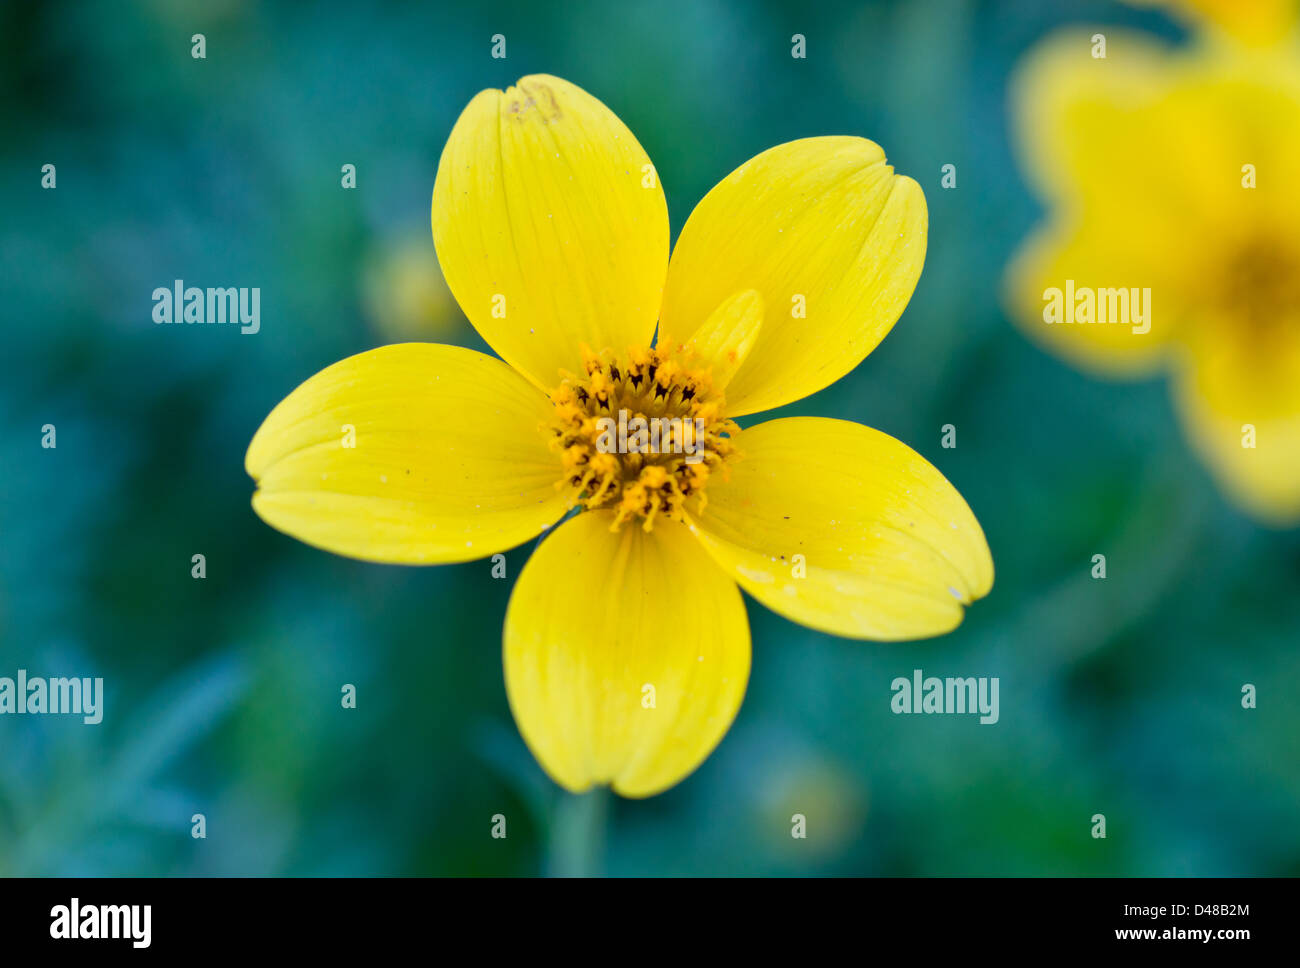 Flower With 5 Petals Stock Photos Flower With 5 Petals Stock